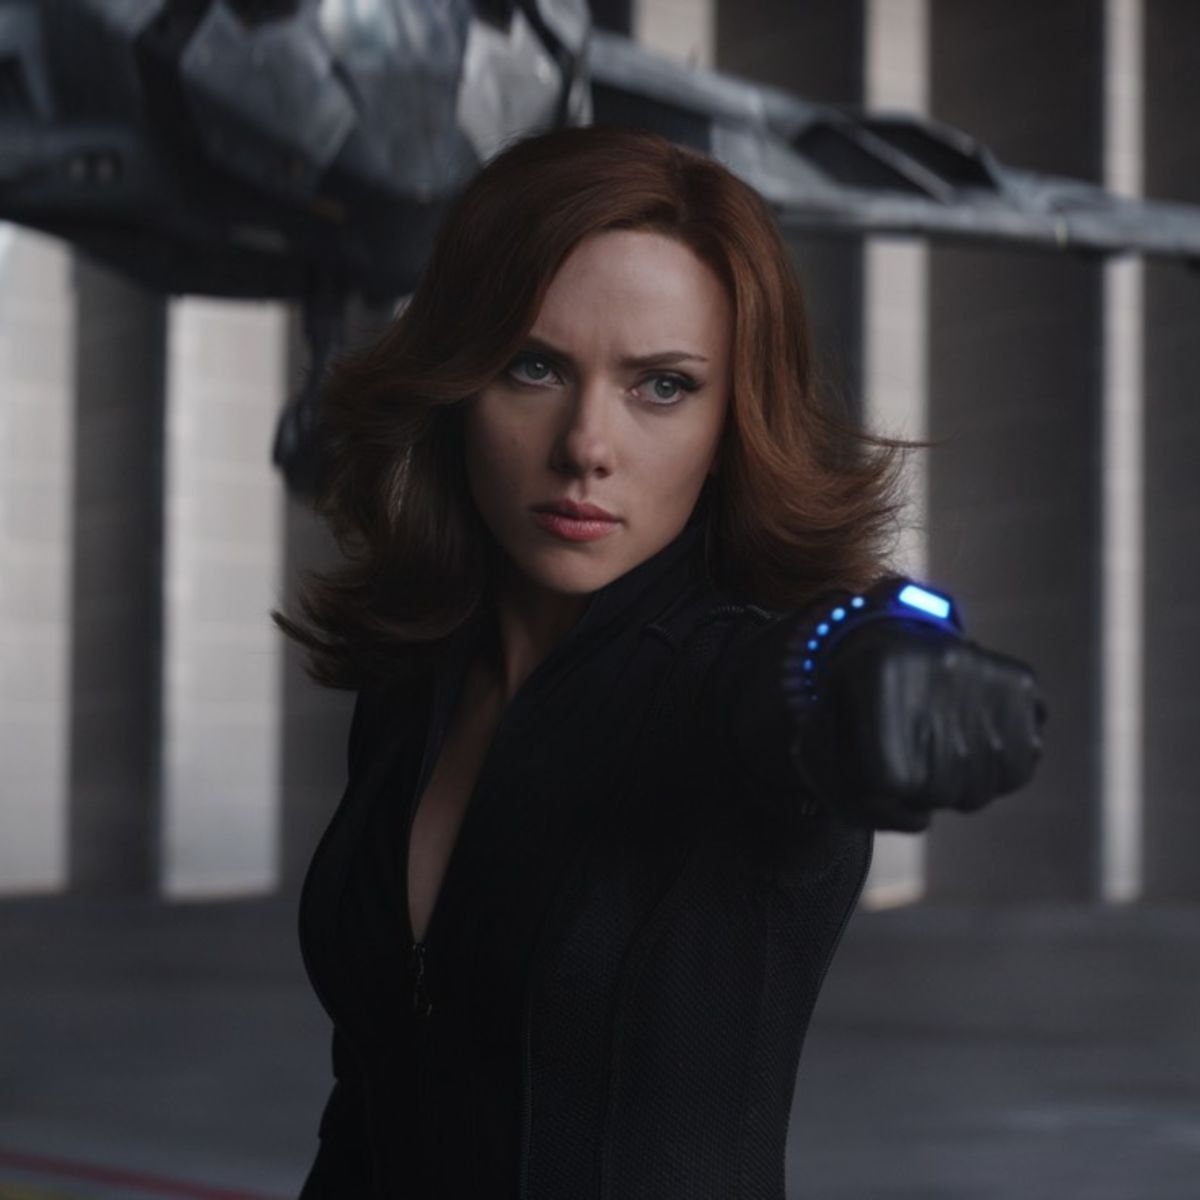 'Black Widow' movie lands female director